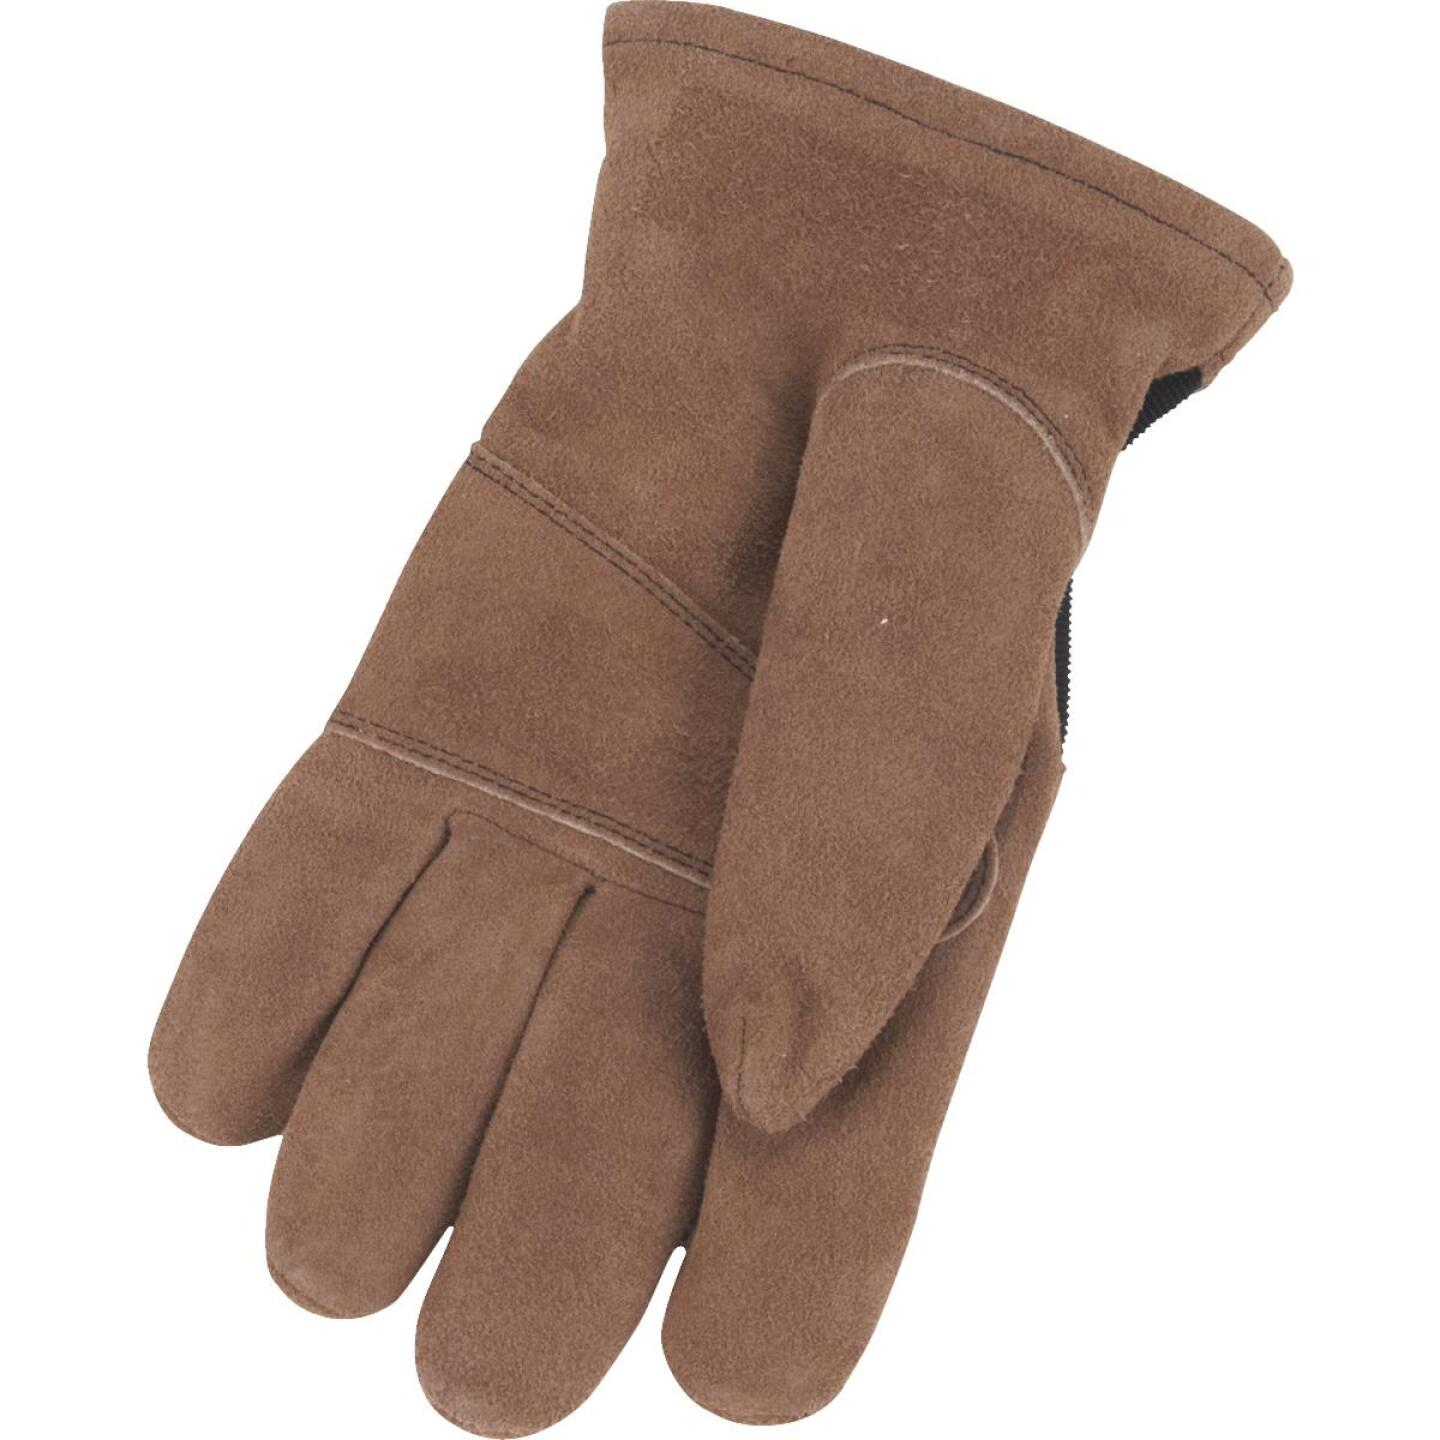 Channellock Men's Large Leather Winter Work Glove Image 3